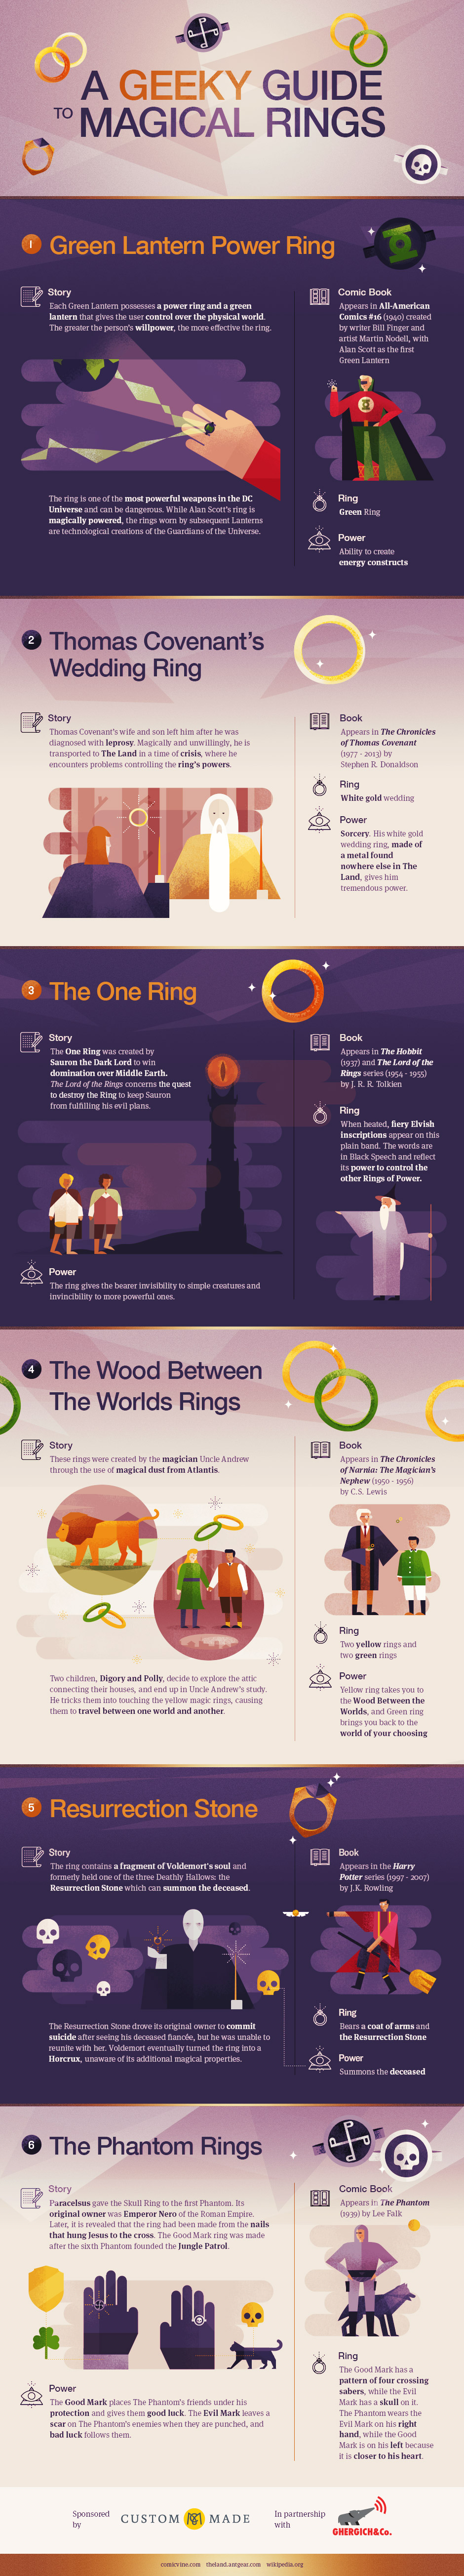 CustomMade presents A Geeky Guide to Magical Rings Infographic